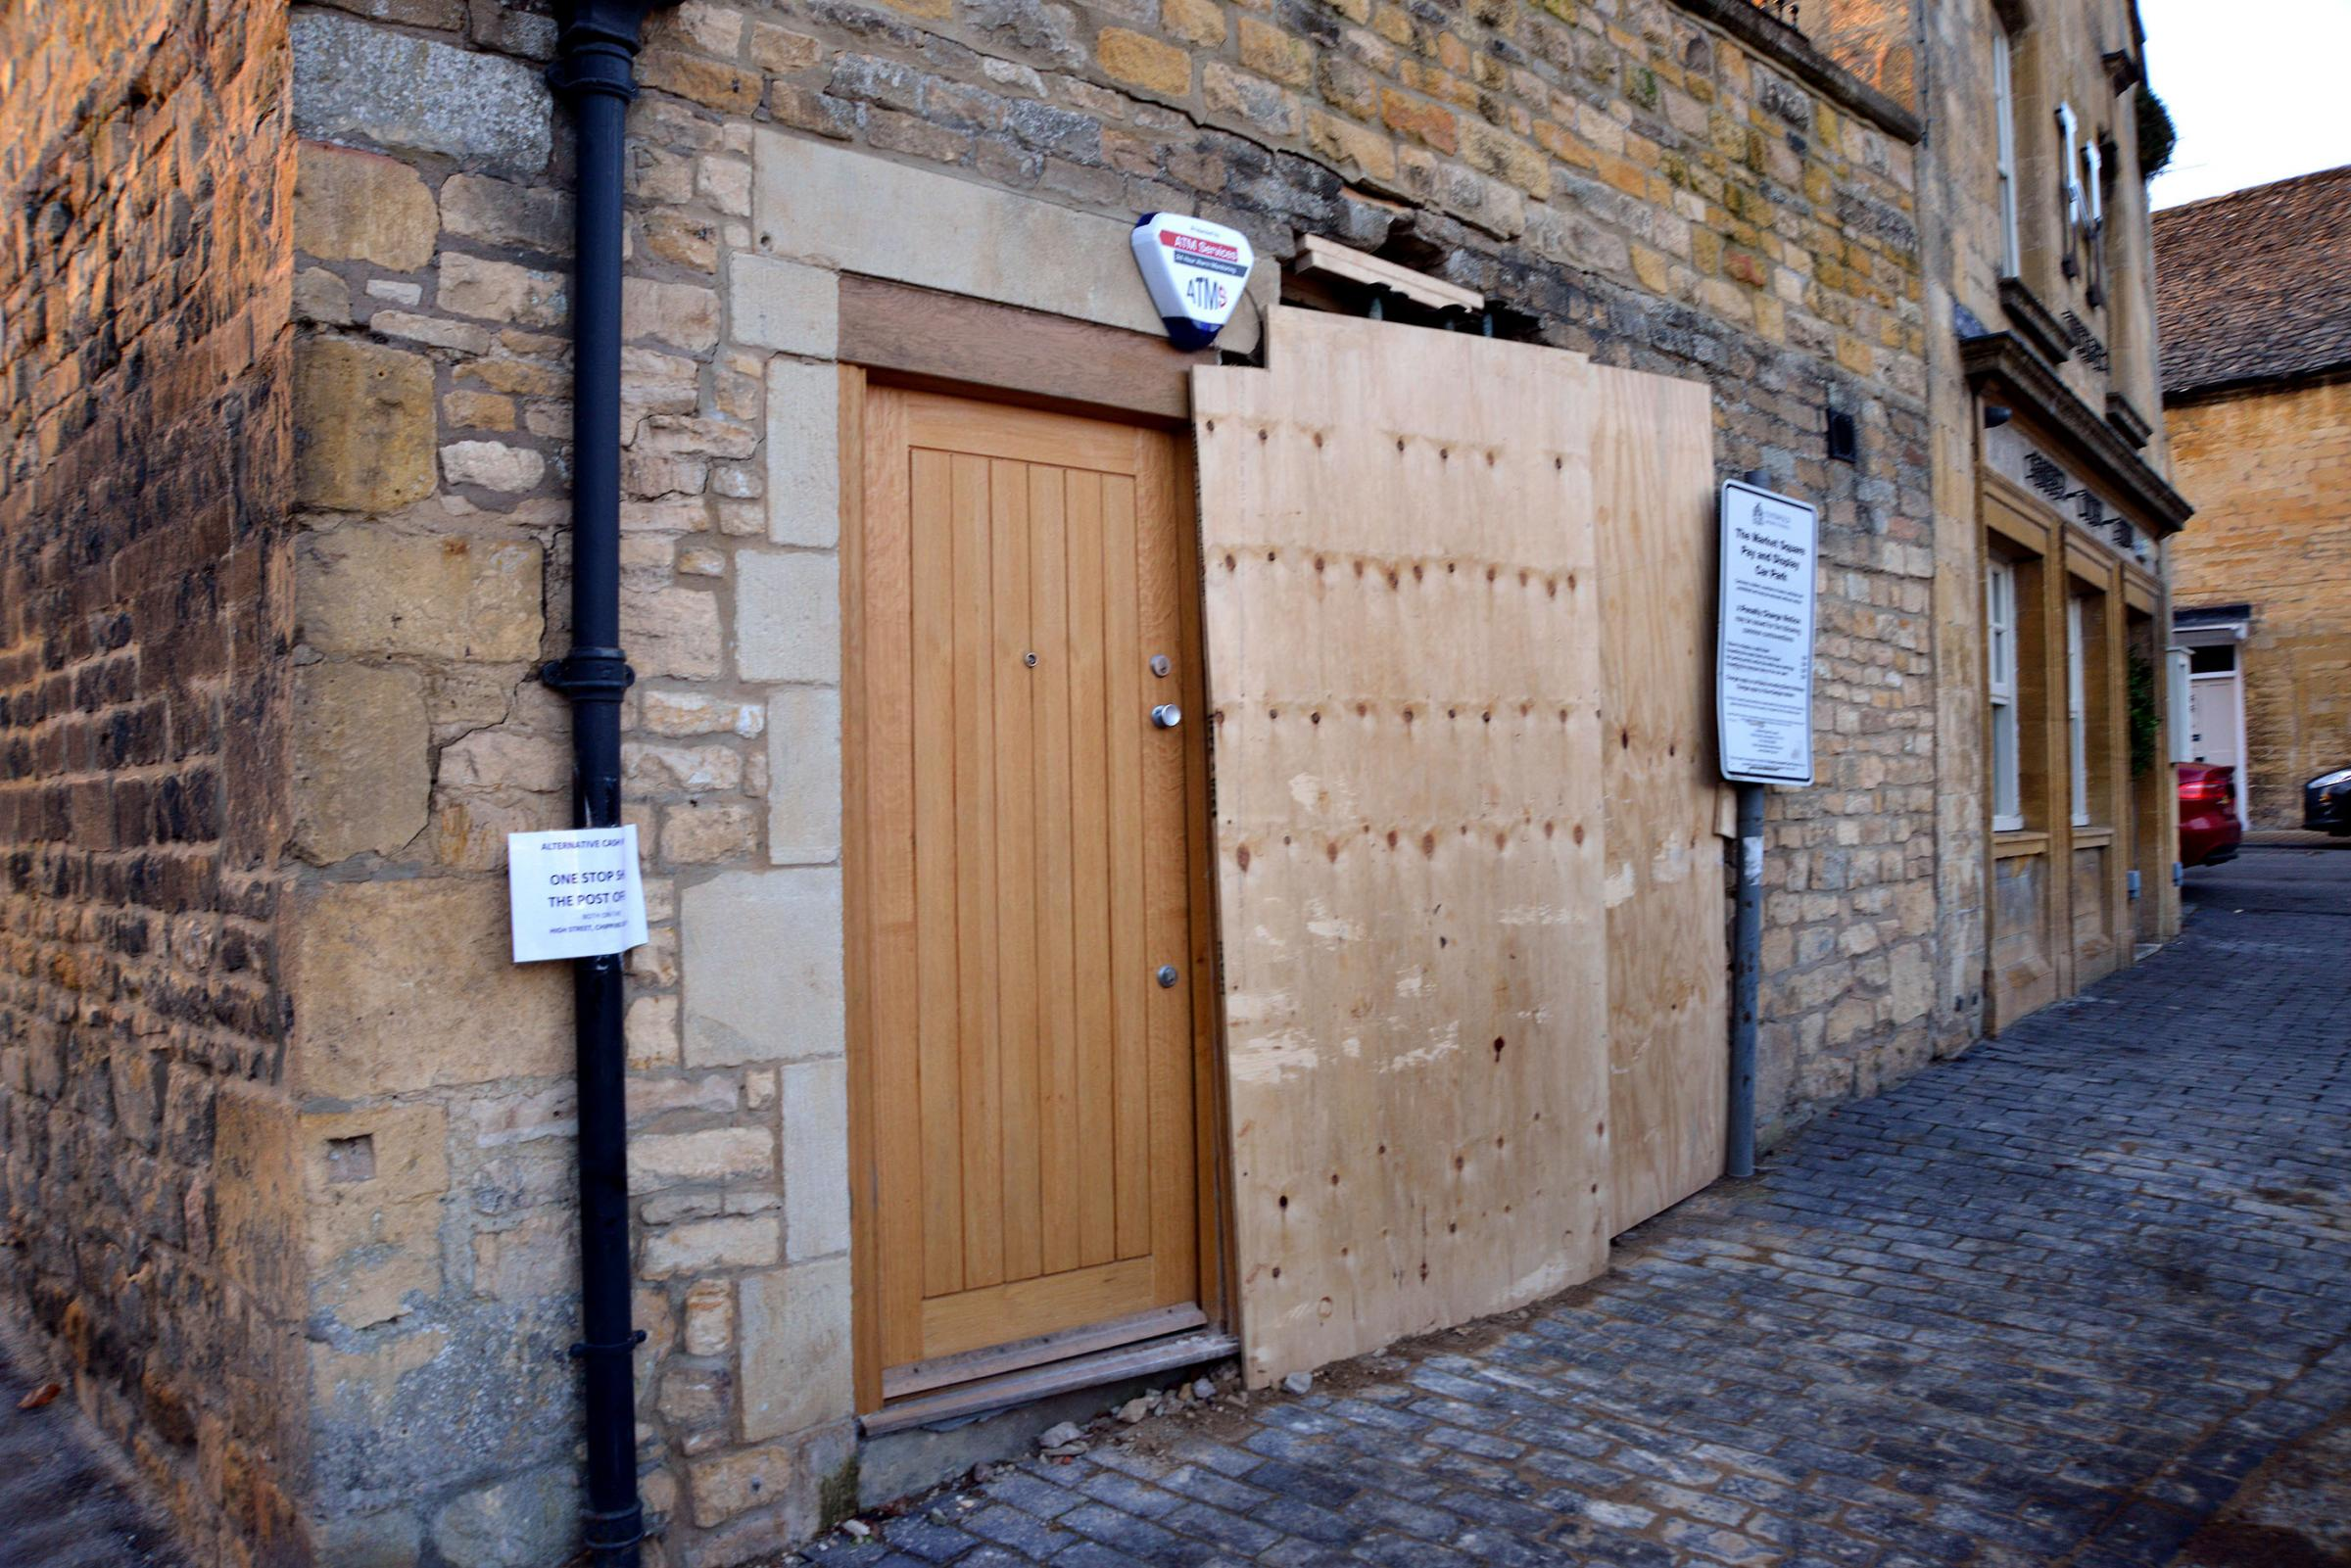 BOARD: The ATM machine stolen from Chipping Camden High Street, no arrests have been made yet